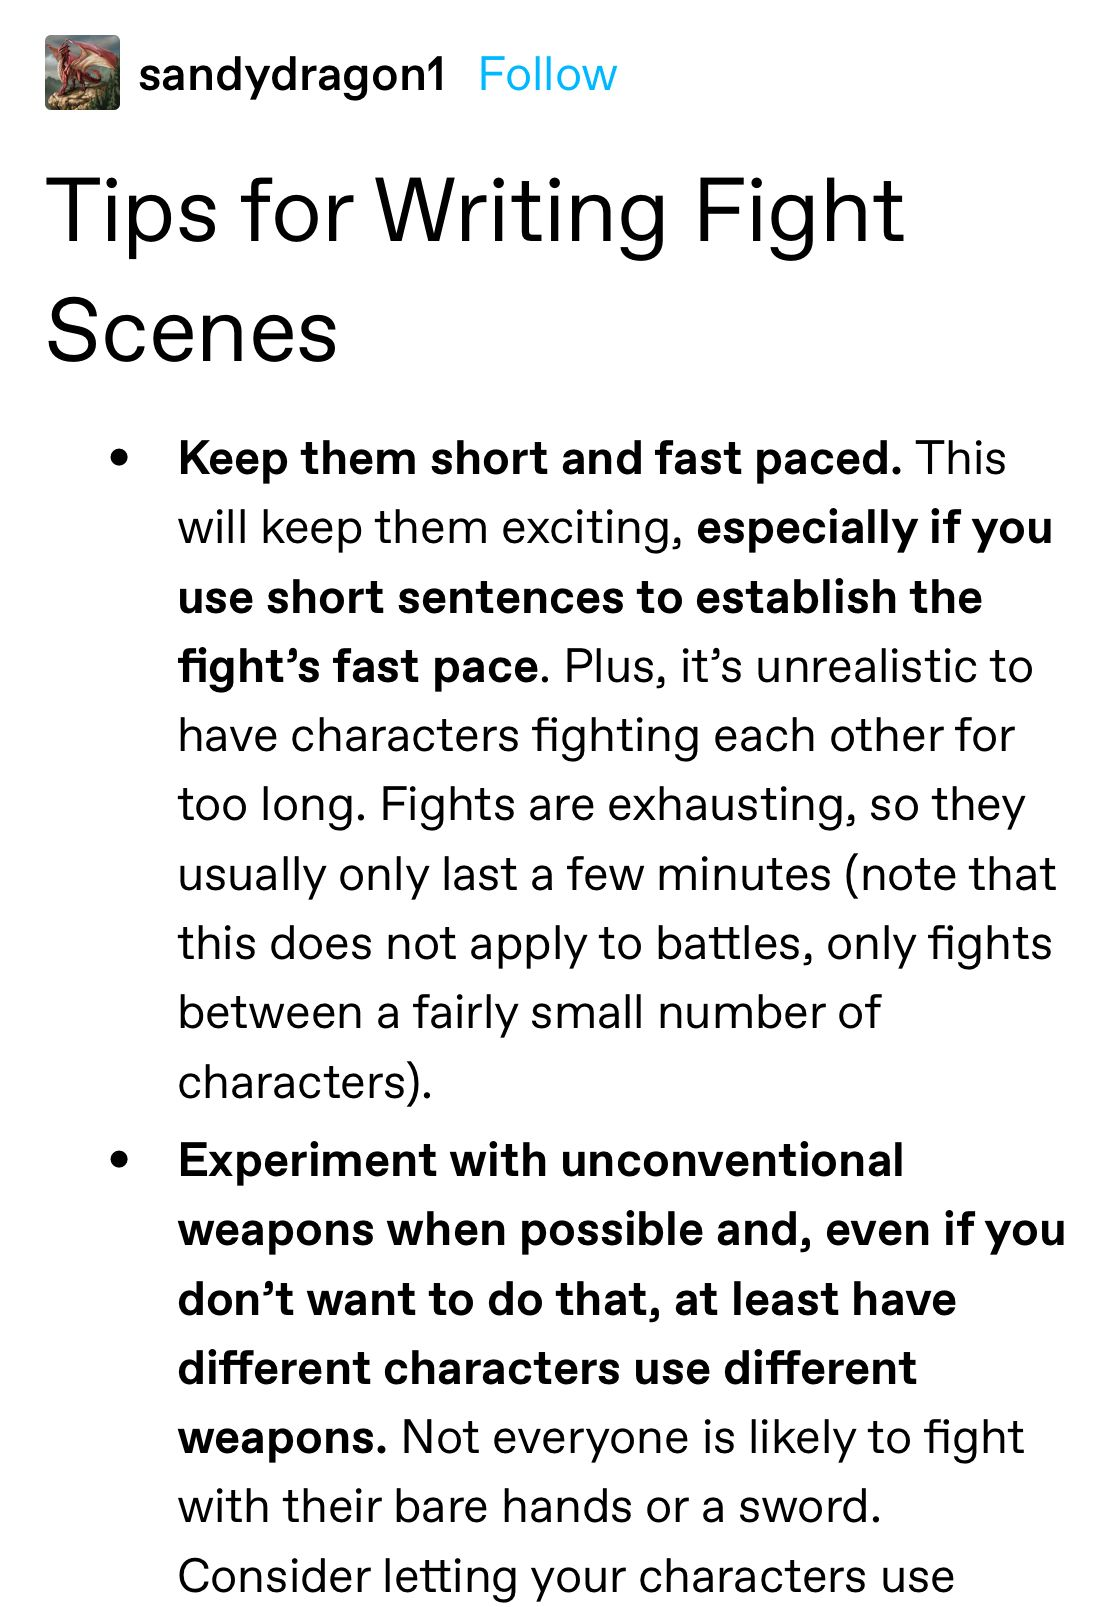 Tips for Writing Fight Scenes  Writing tips, Book writing tips